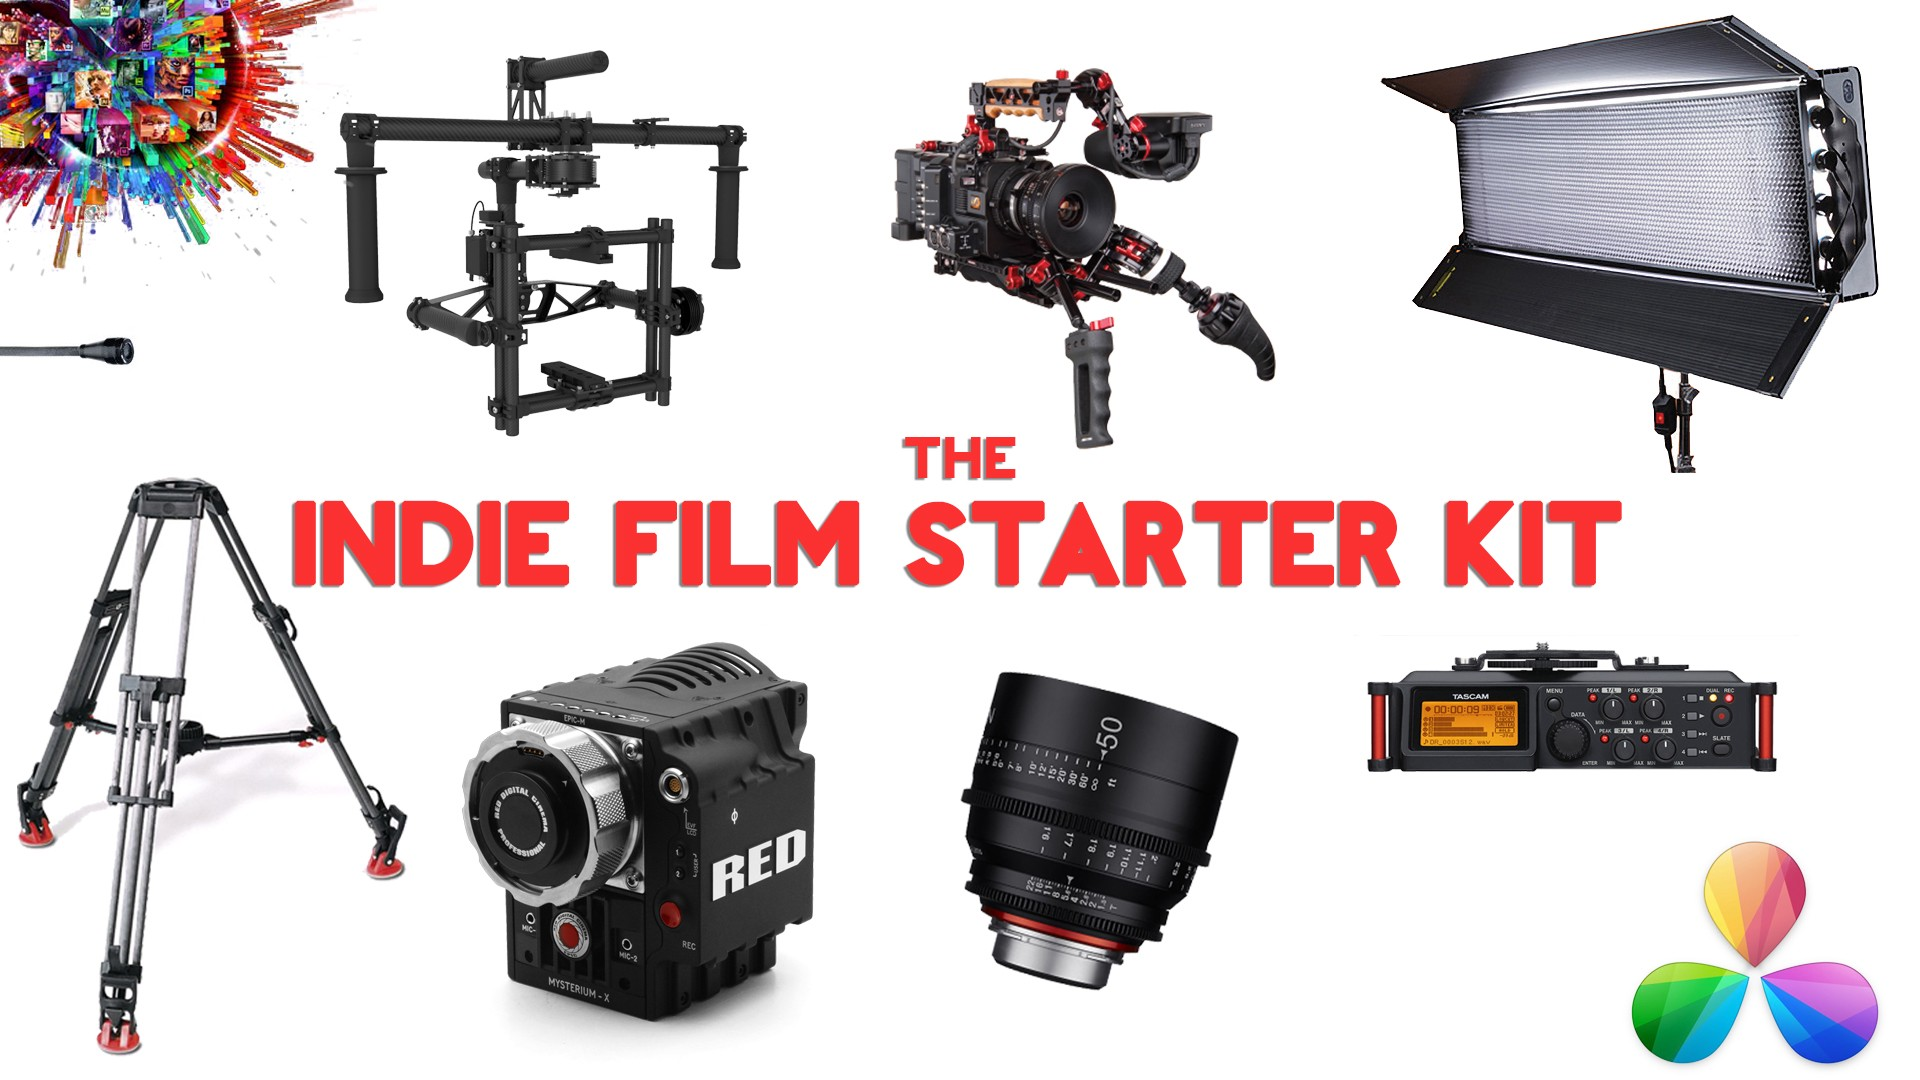 sc 1 st  Medium & The Indie Film Starter Kit u2013 tommysTV u2013 Medium